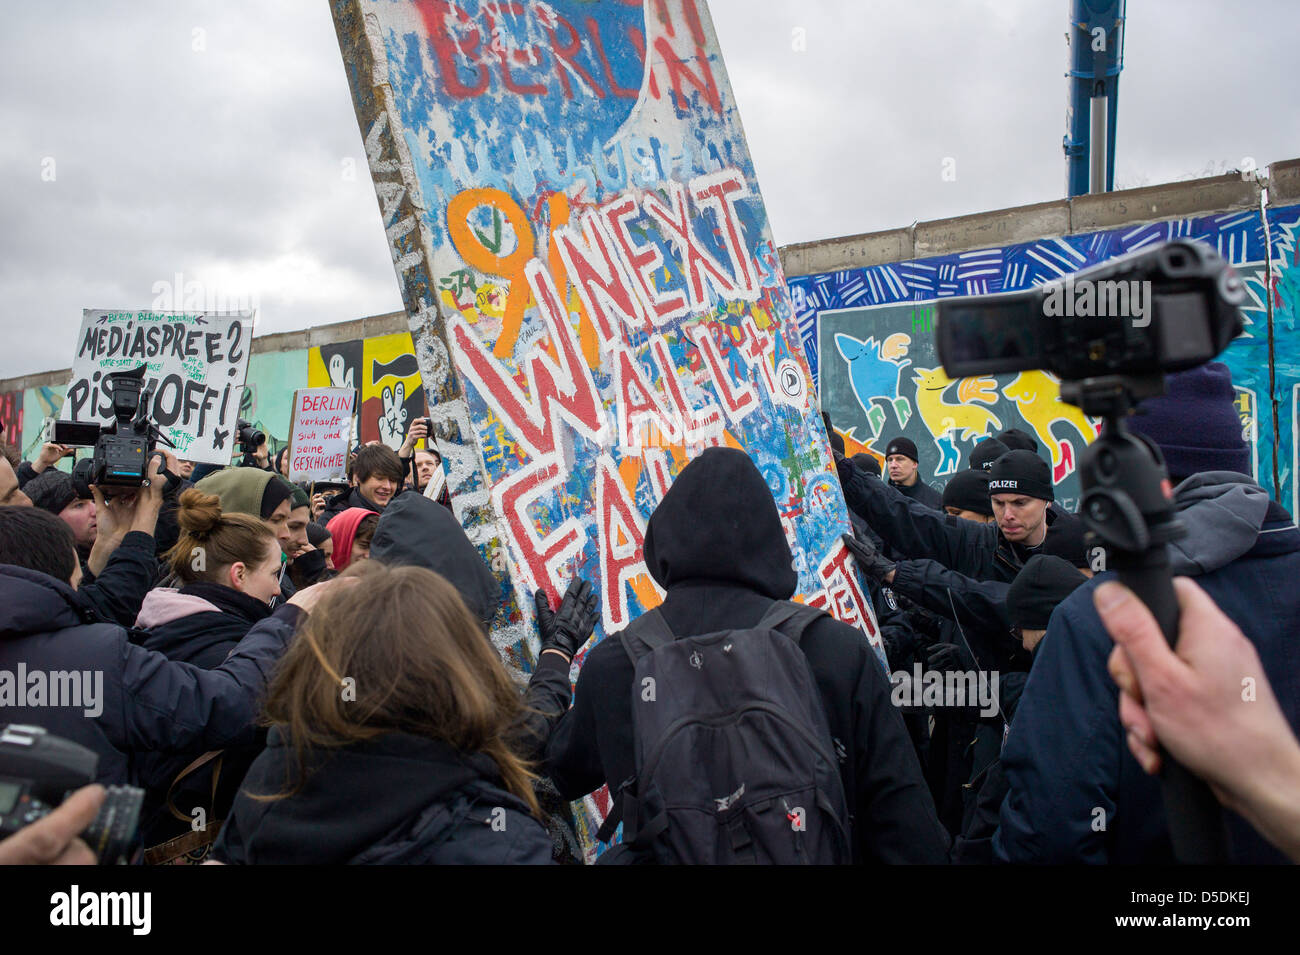 Berlin, Germany, demonstrators with a wall segment papier-mâché - Stock Image